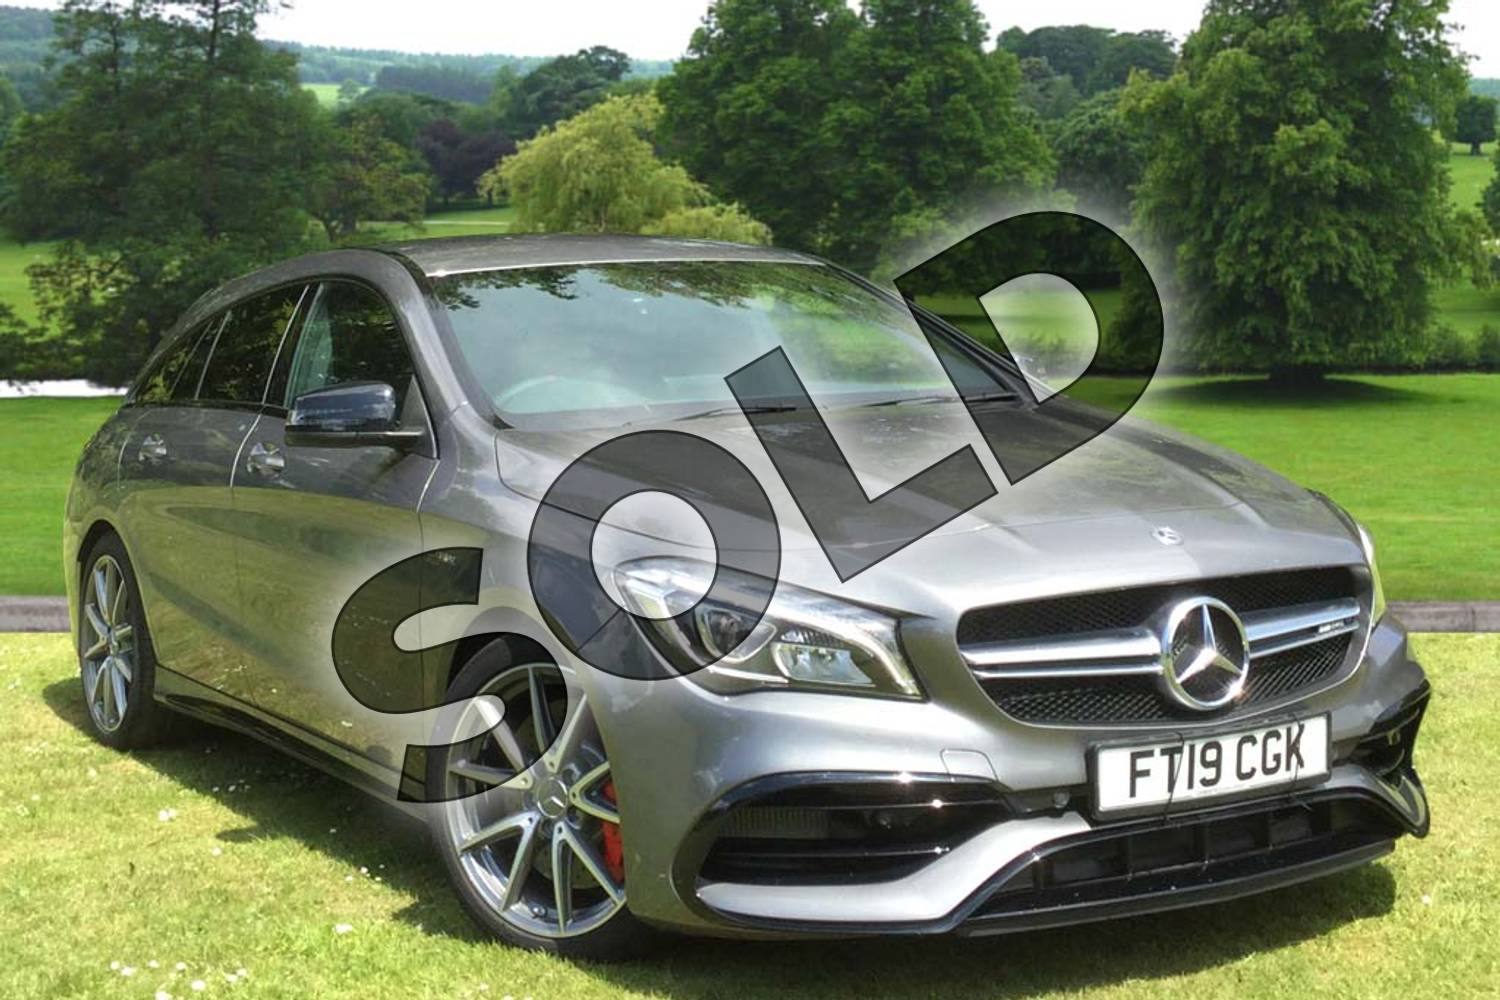 2019 Mercedes-Benz CLA Class AMG Shooting Brake CLA 45 Night Edition 4Matic 5dr Tip Auto in mountain grey metallic at Mercedes-Benz of Grimsby